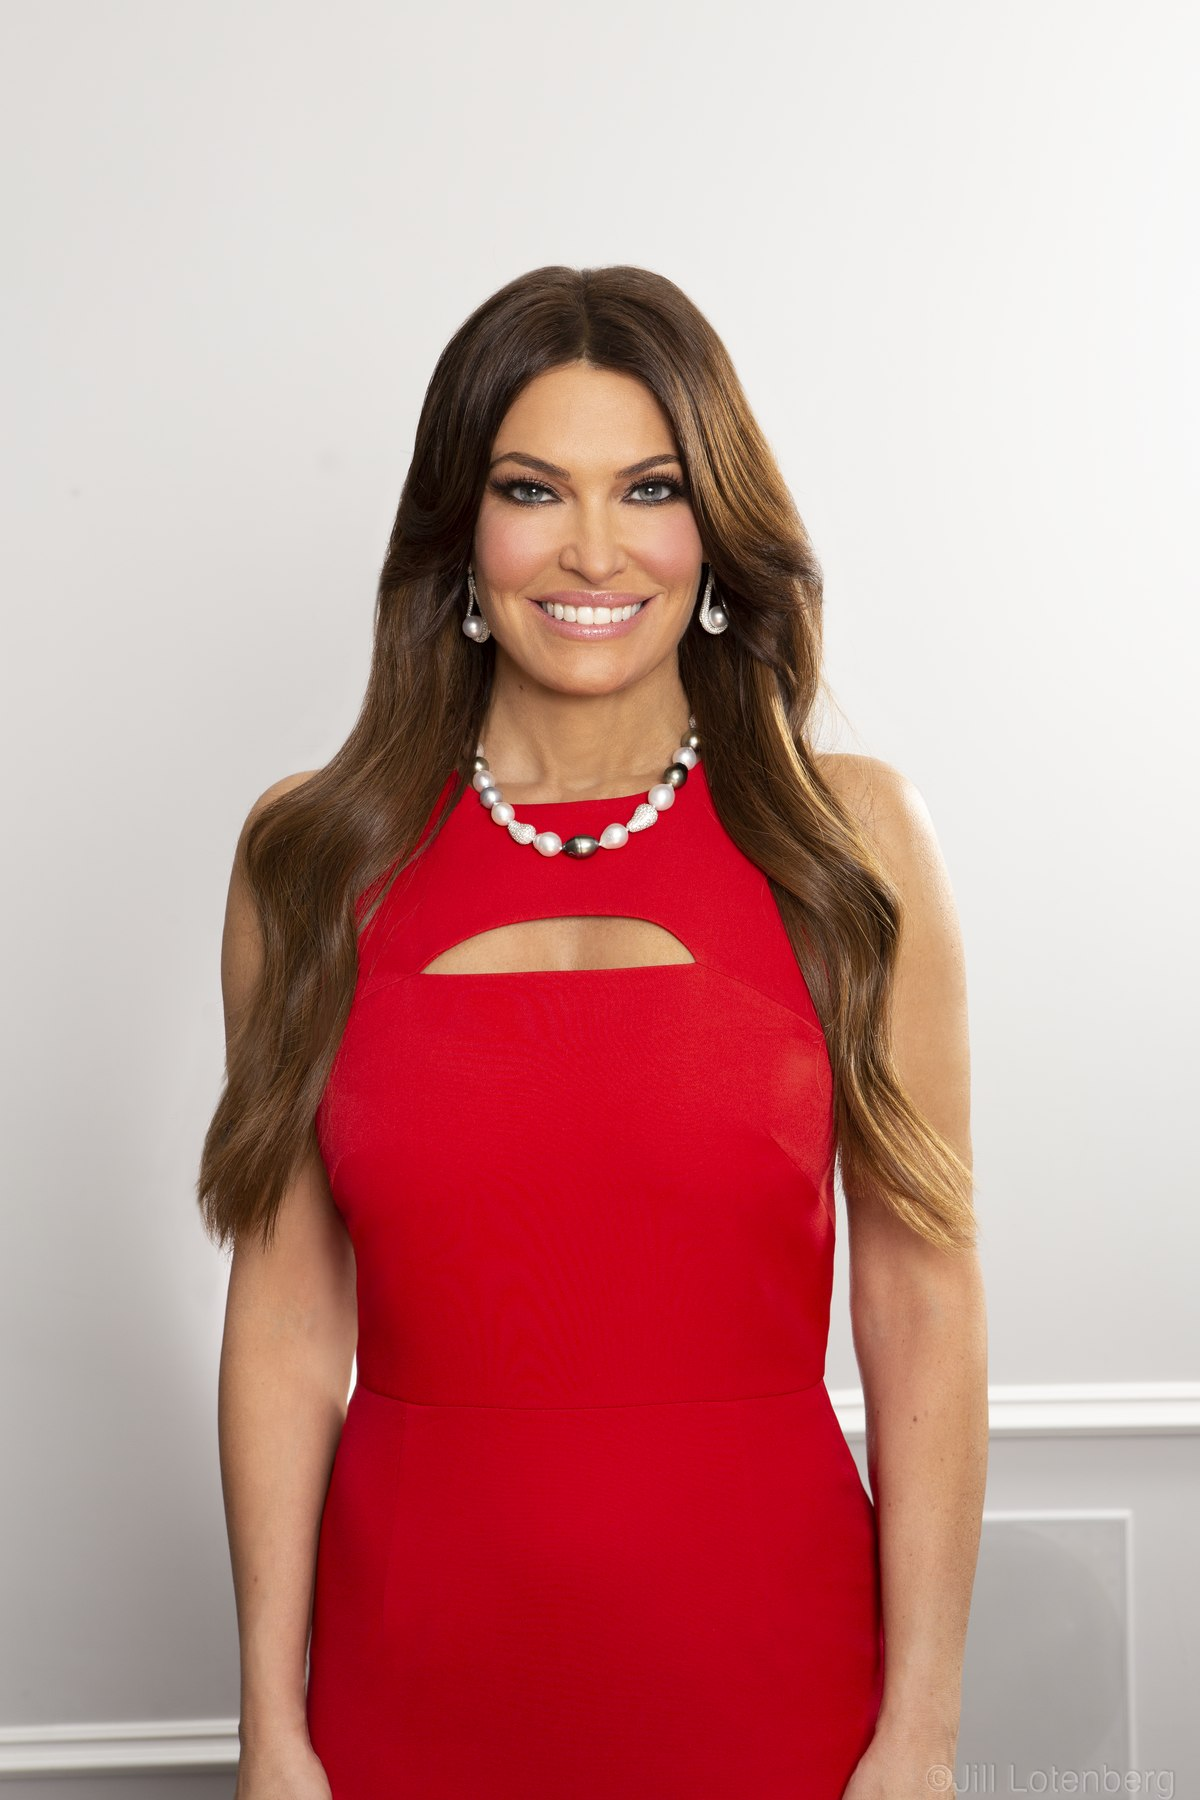 Kimberly Guilfoyle - Wikipedia